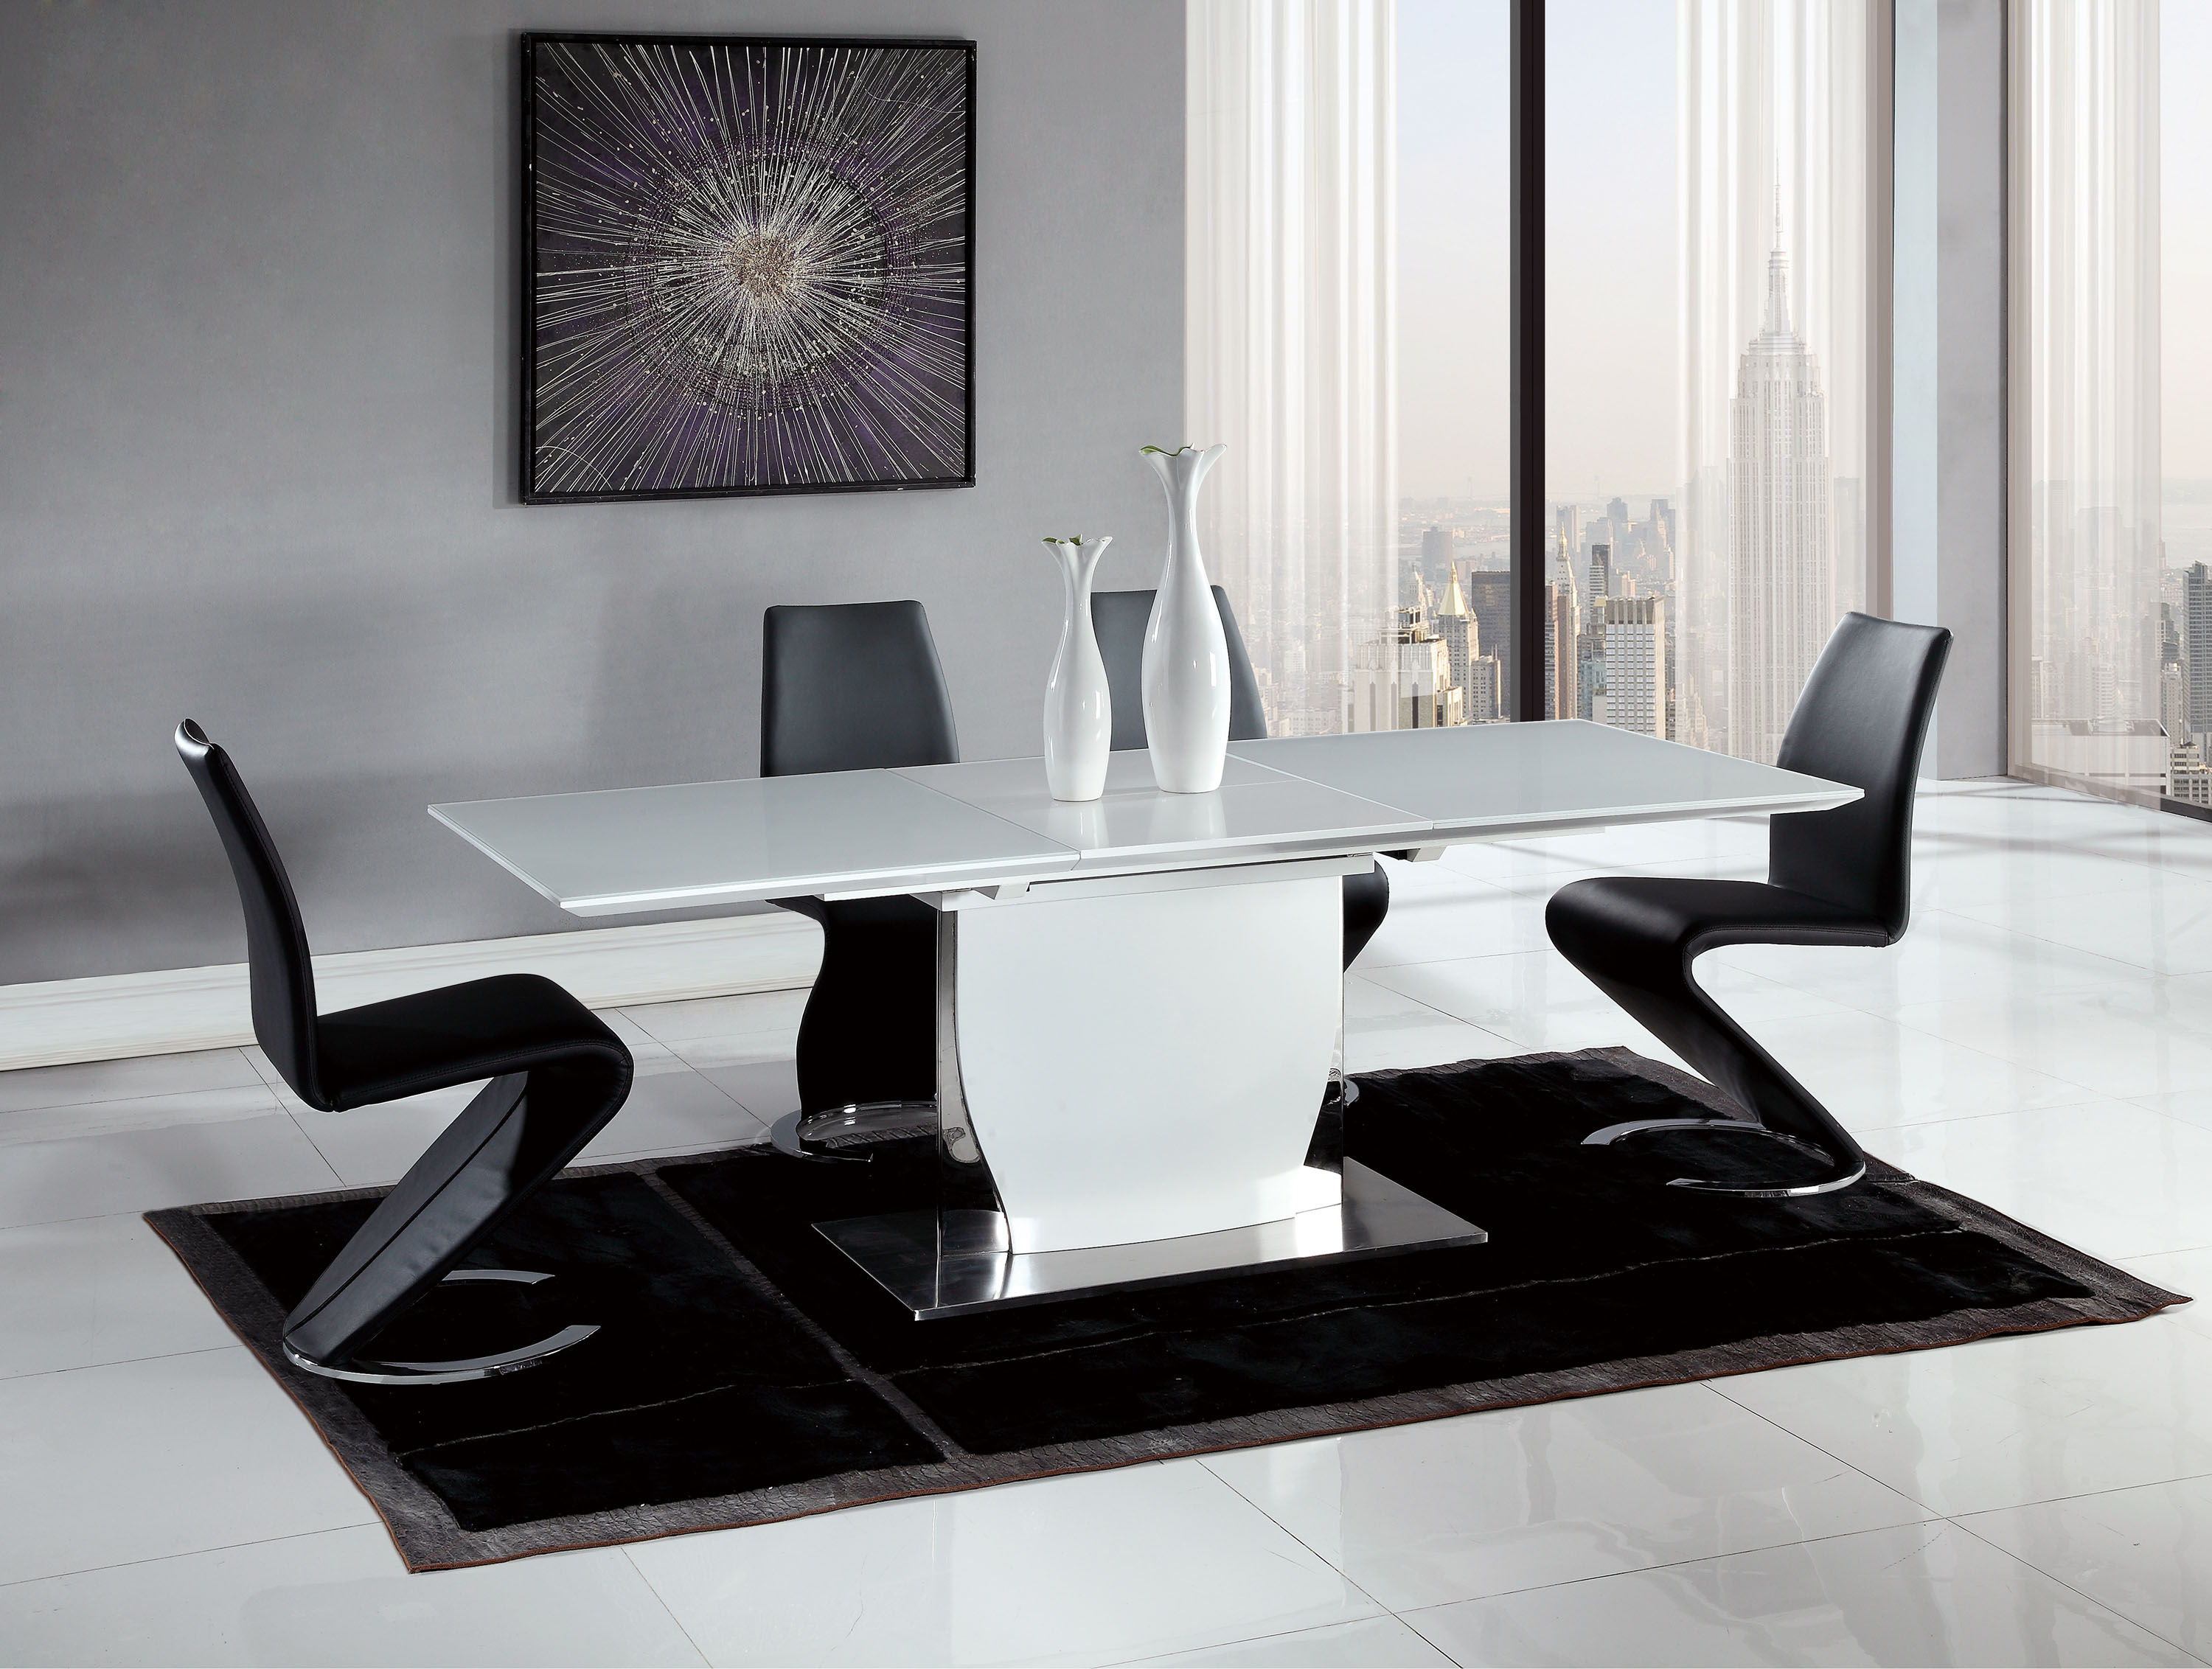 Contemporary Black and White Dining Set with Elegant Black